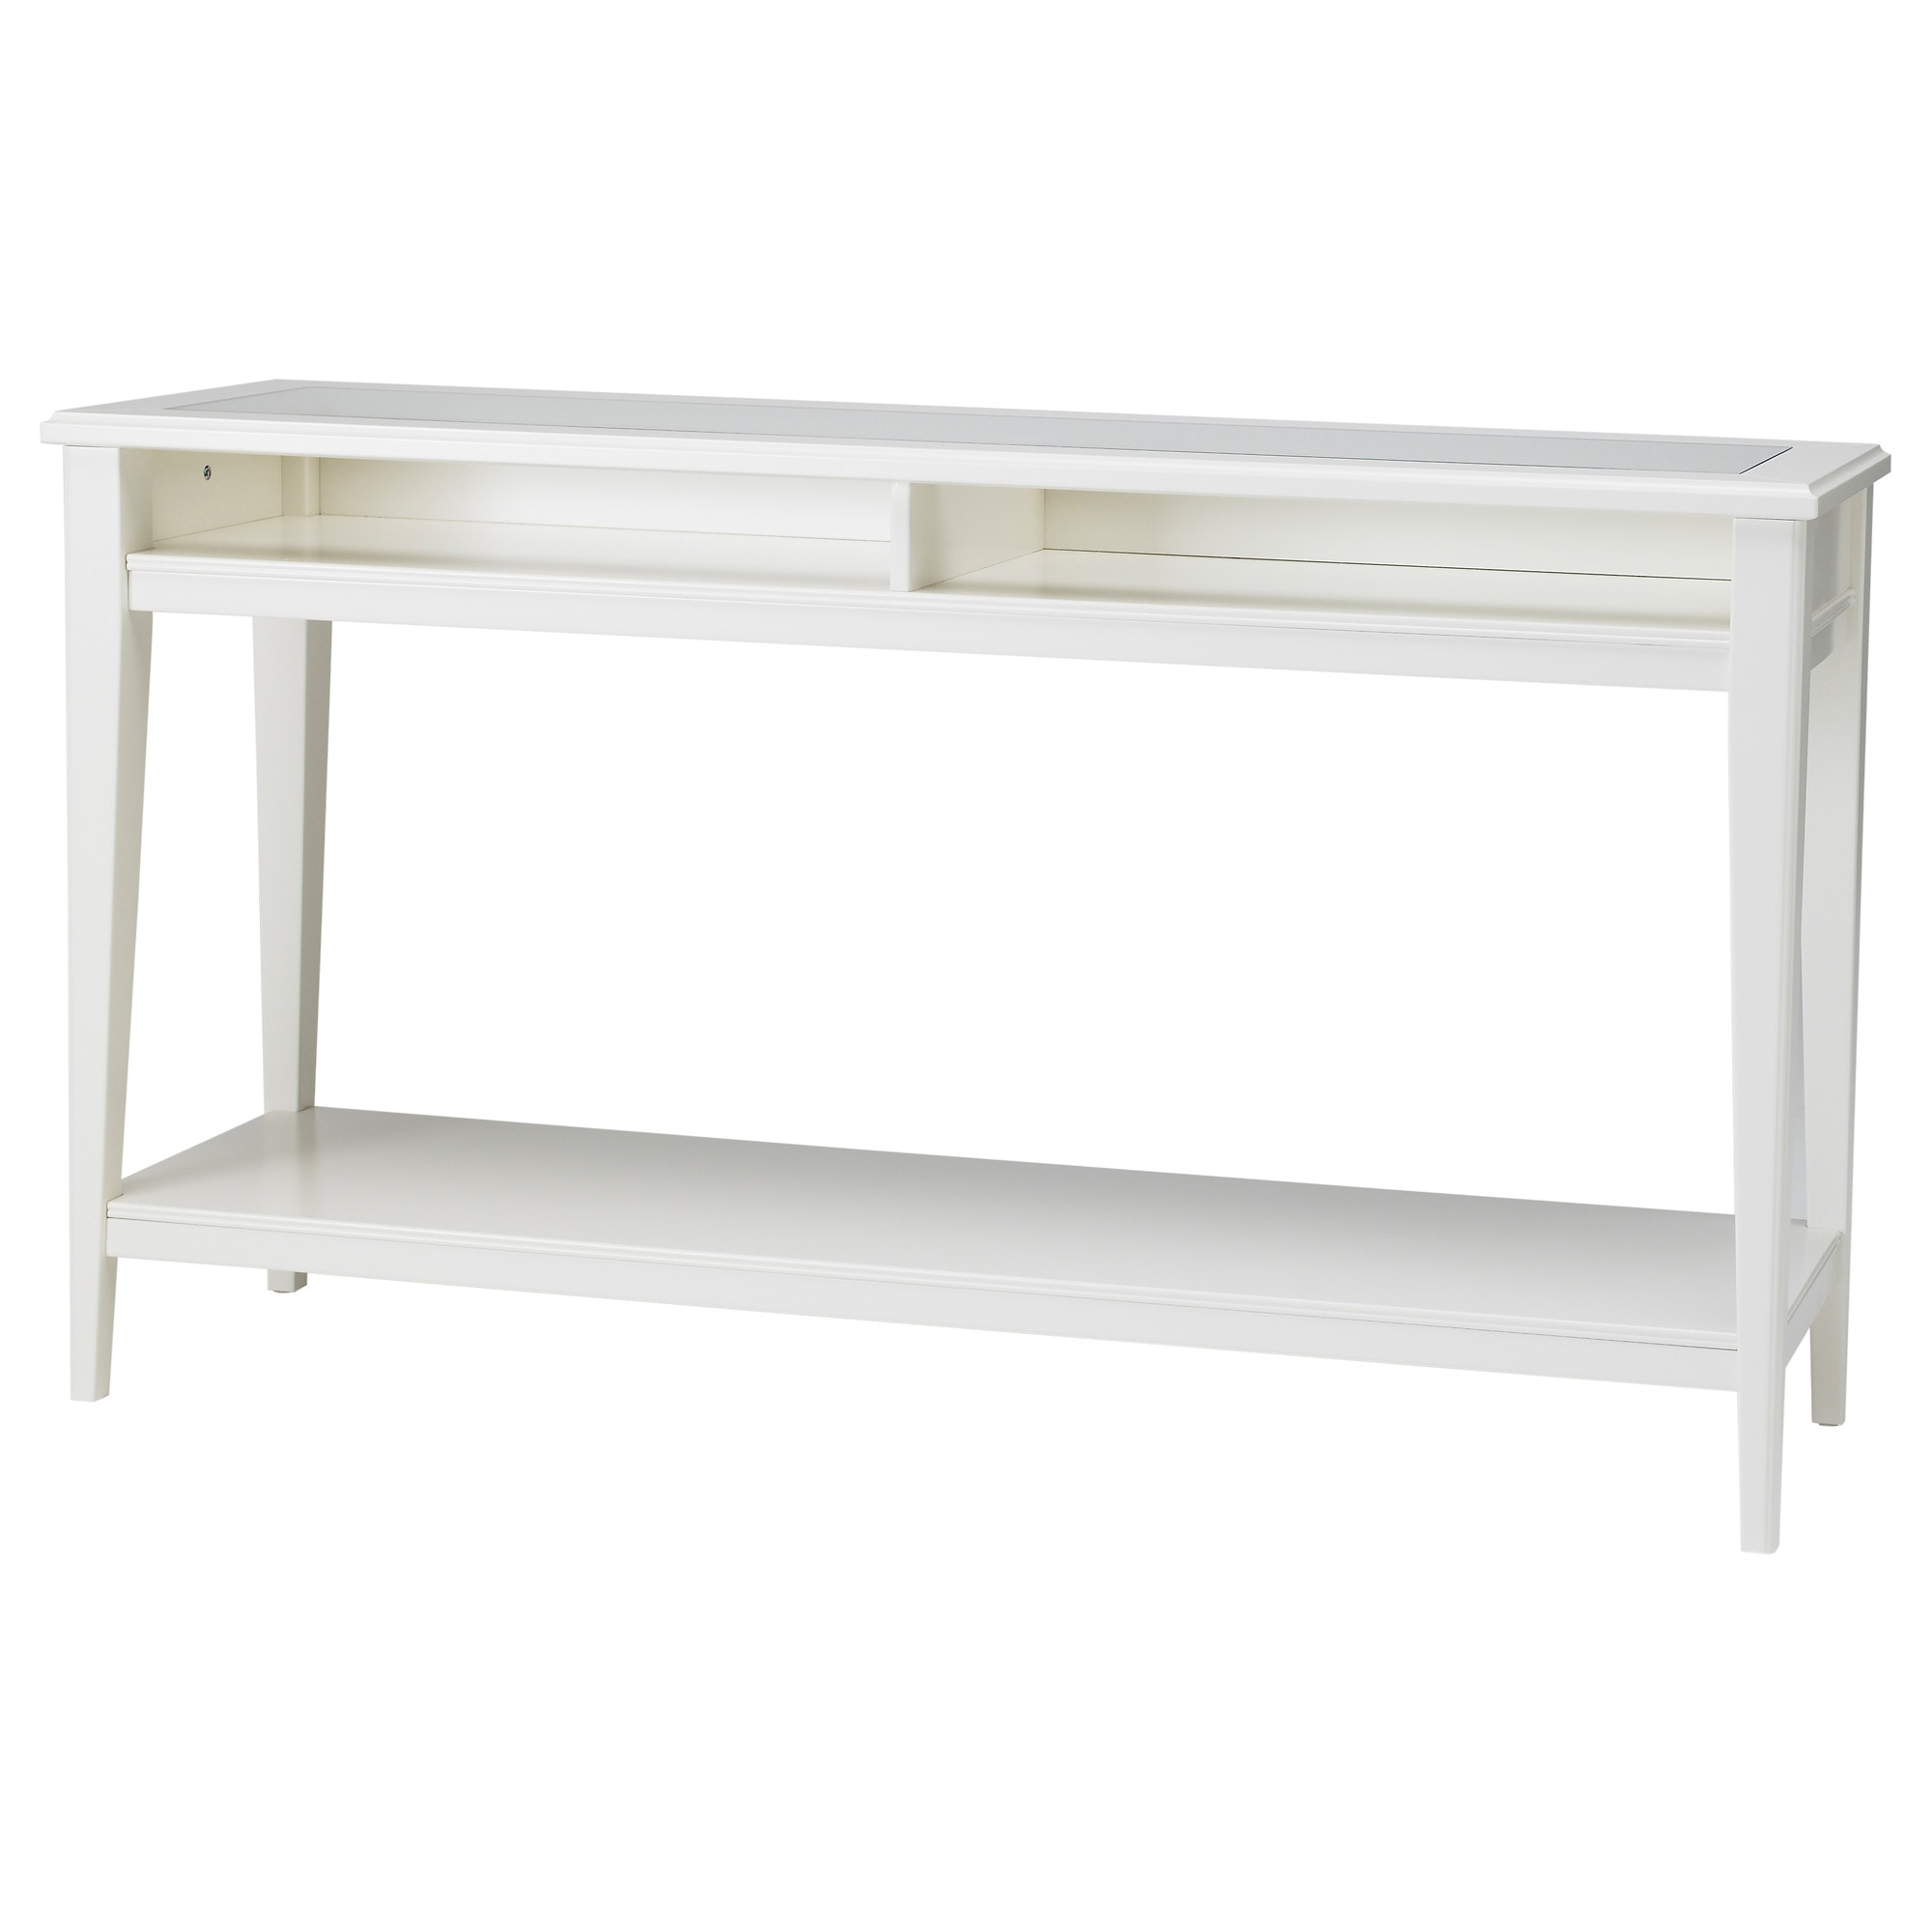 LIATORP Console table white glass IKEA